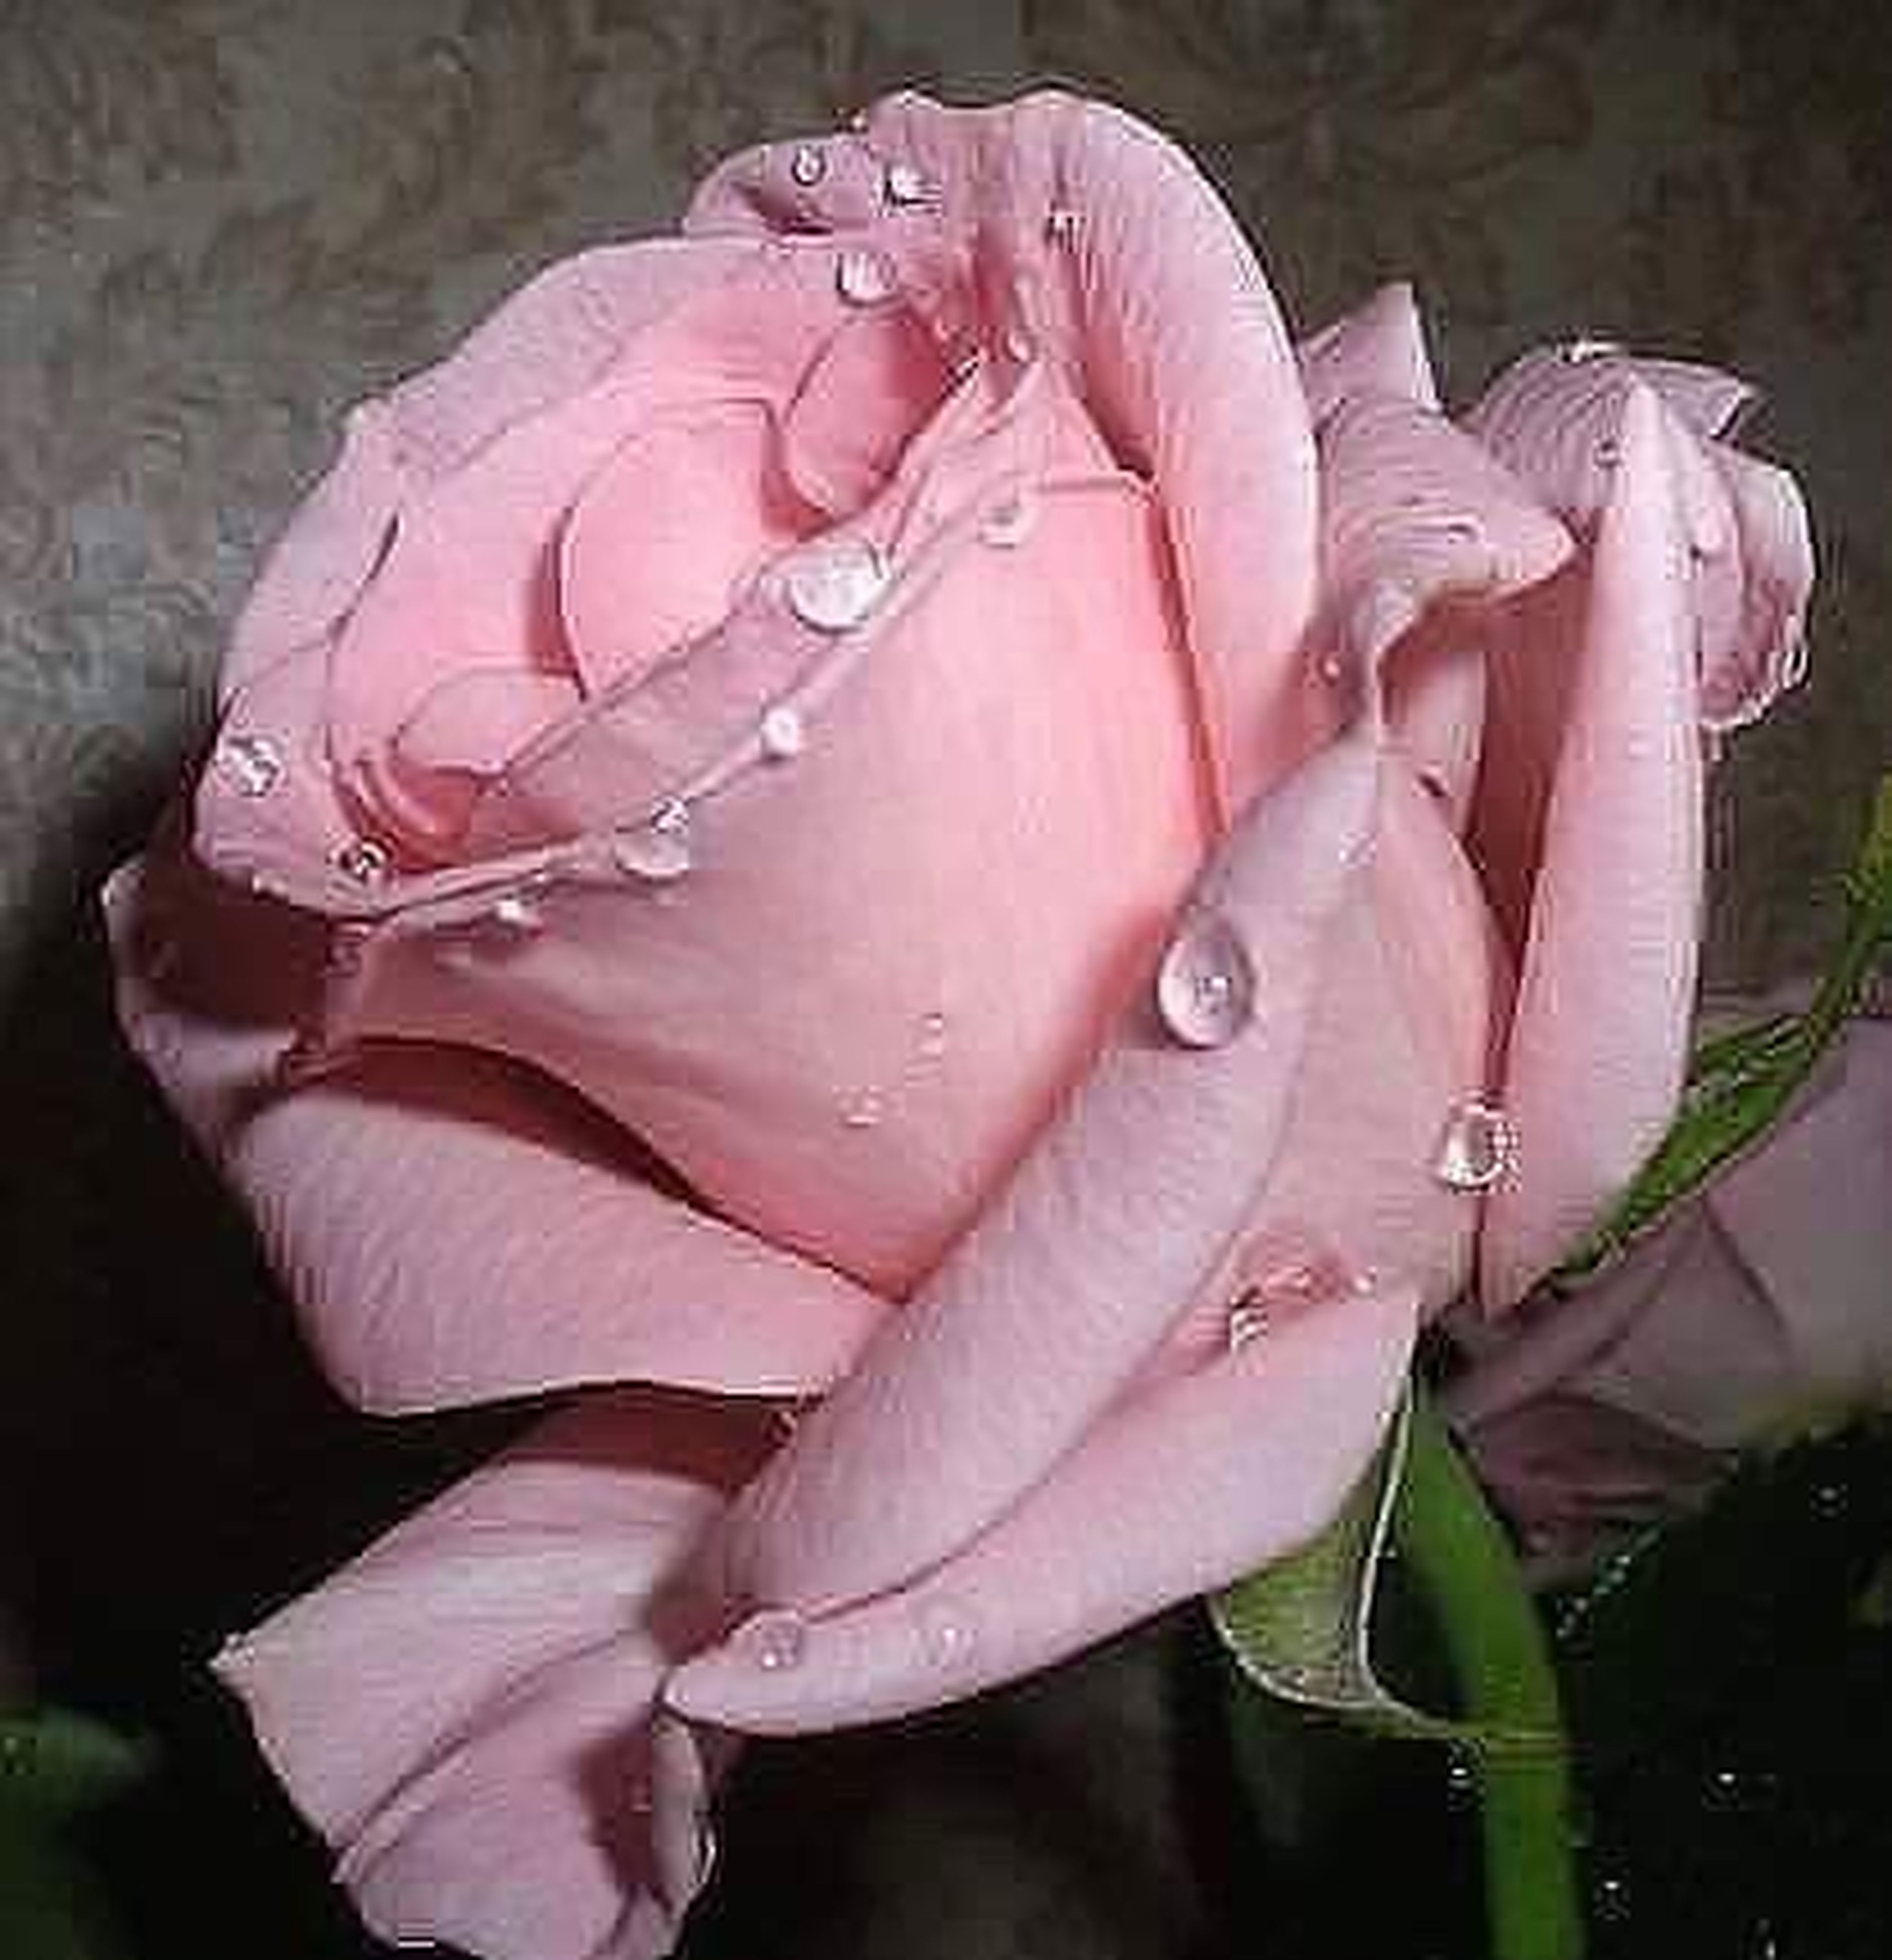 flower, drop, water, fragility, petal, wet, freshness, close-up, beauty in nature, growth, flower head, selective focus, raindrop, rain, in bloom, springtime, weather, pink color, single flower, nature, rose - flower, purity, blossom, plant, softness, dew, botany, rose, day, outdoors, bunch of flowers, vibrant color